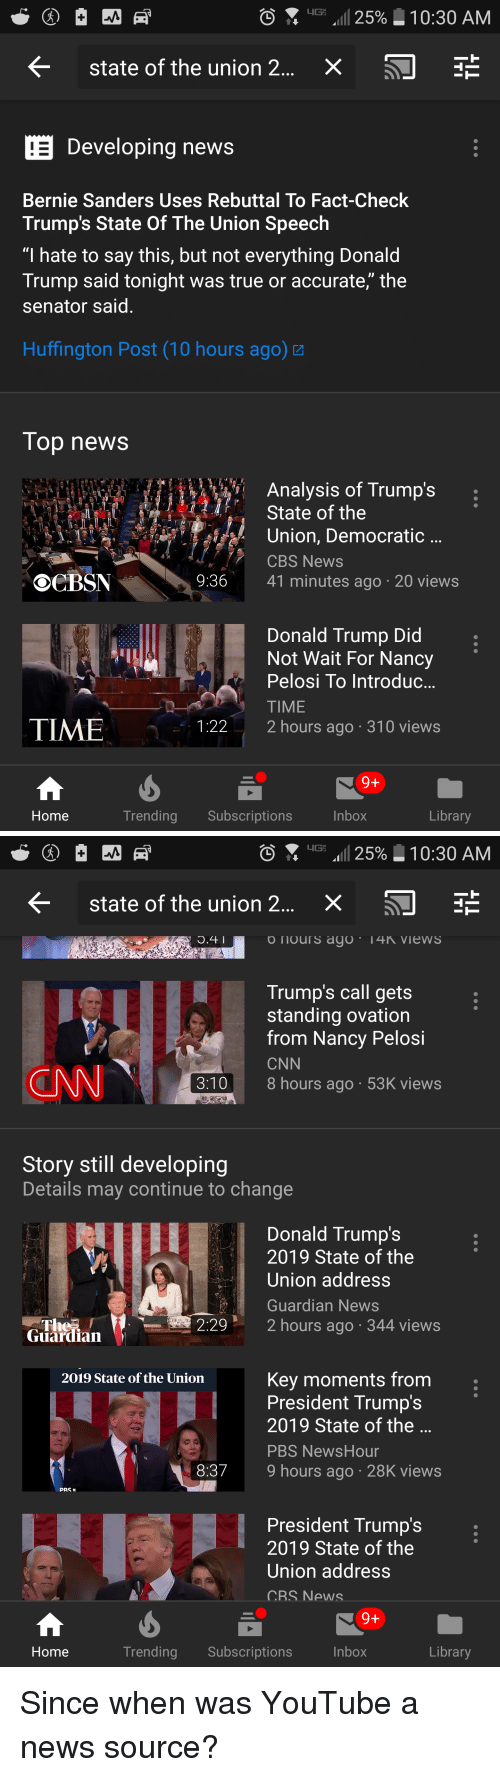 "Bernie Sanders, cnn.com, and Donald Trump: IG: ""11 25%-10:30 AM  <  state of the union 2  x  Developing news  Bernie Sanders Uses Rebuttal To Fact-Check  Trump's State Of The Union Speech  ""I hate to say this, but not everything Donald  Trump said tonight was true or accurate,"" the  senator said  Huffington Post (10 hours ago)  Top news  Analysis of Trump's :  State of the  Union, Democratic  CBS News  41 minutes ago 20 views  OCBSN  9:36  Donald Trump Did  Not Wait For Nancy  Pelosi To Introduc  TIME  2 hours ago 310 views  TIME  1:22  Home  Trending Subscriptions  Inbox  Library   iG: .11 25%-10:30 AM  state of the union 2  X  Trump's call gets  standing ovation  from Nancy Pelosi  CNN  8 hours ago 53K views  Story still developing  Details may continue to change  Donald Trump's  2019 State of the  Union address  Guardian News  :29 2 h  ours ago 344 views  Guardian  Key moments from.  President Trump's  2019 State of the  PBS NewsHour  9 hours ago 28K views  2019 State of the Uniorn  a o  8:37  PRS  President Trump's  2019 State of the  Union address  CRS News  Home  Trending Subscriptions  Inbox  Library Since when was YouTube a news source?"